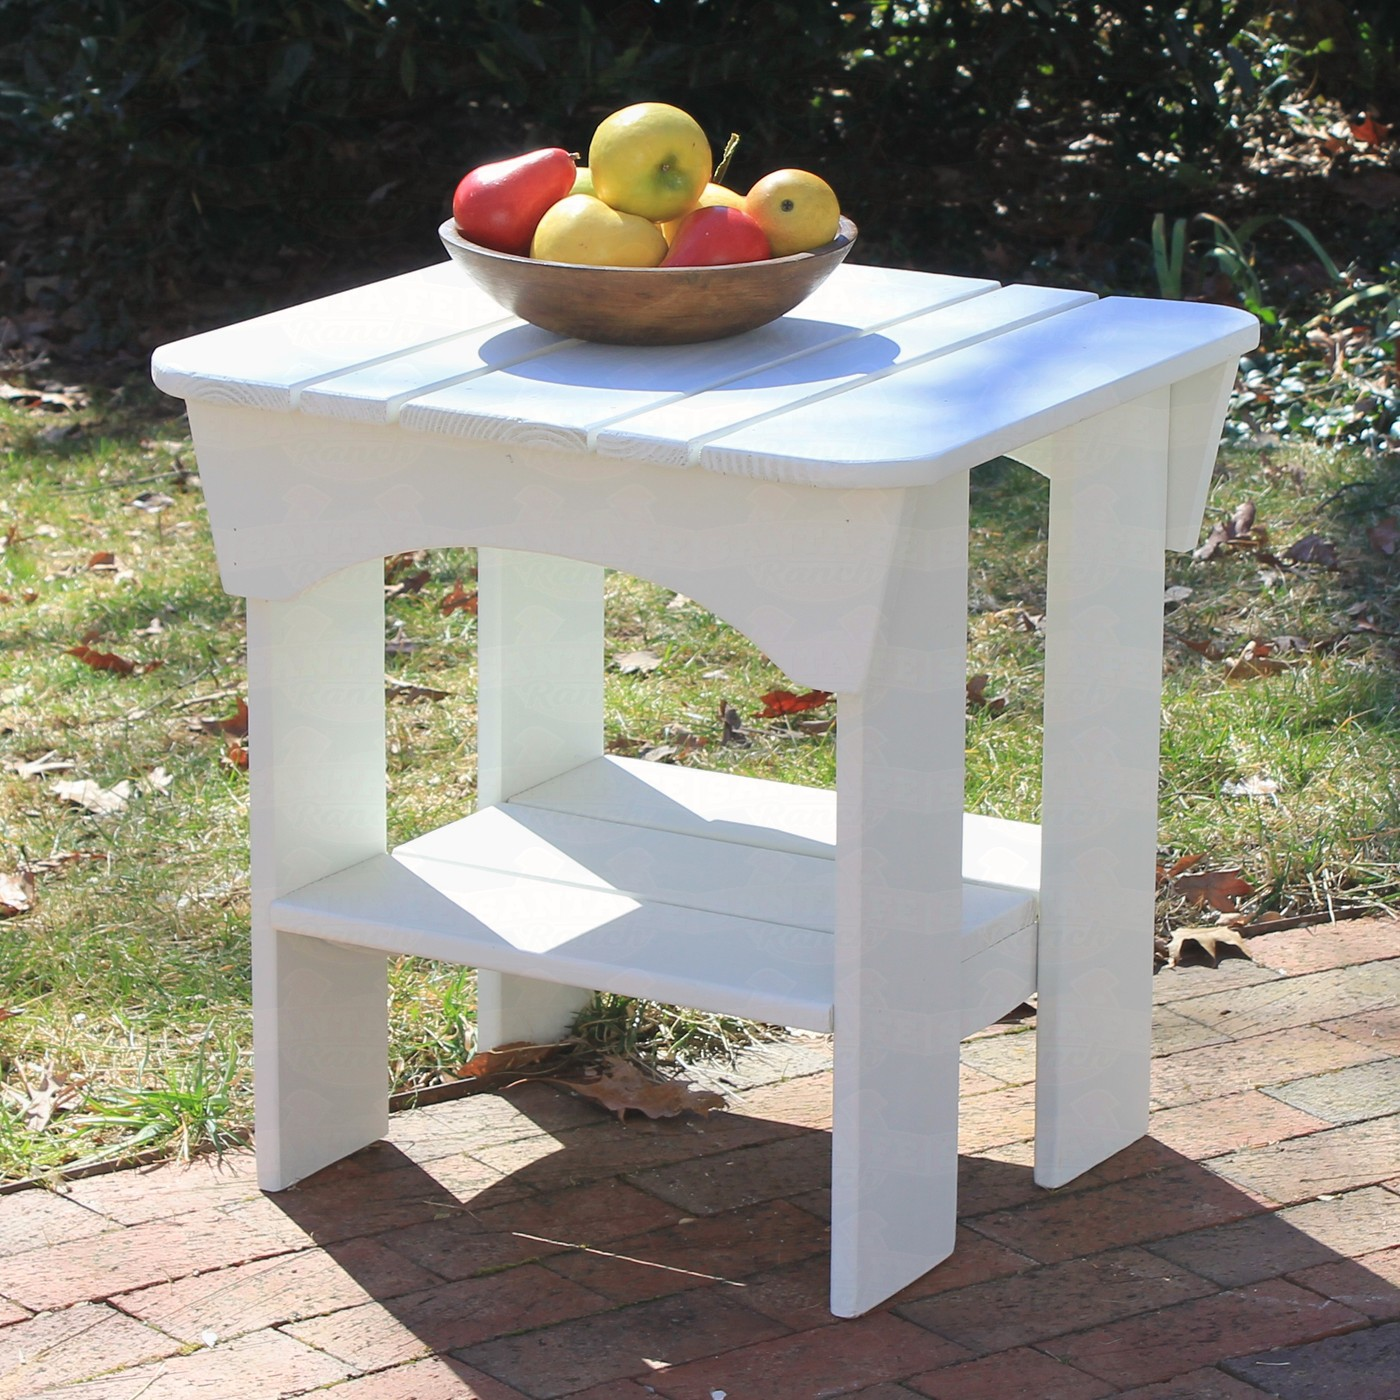 uwharrie chair canary yellow original outdoor side table accent porch furniture sauder harbor view new coffee diy patio umbrella stand black and white light pink ikea lamp shades